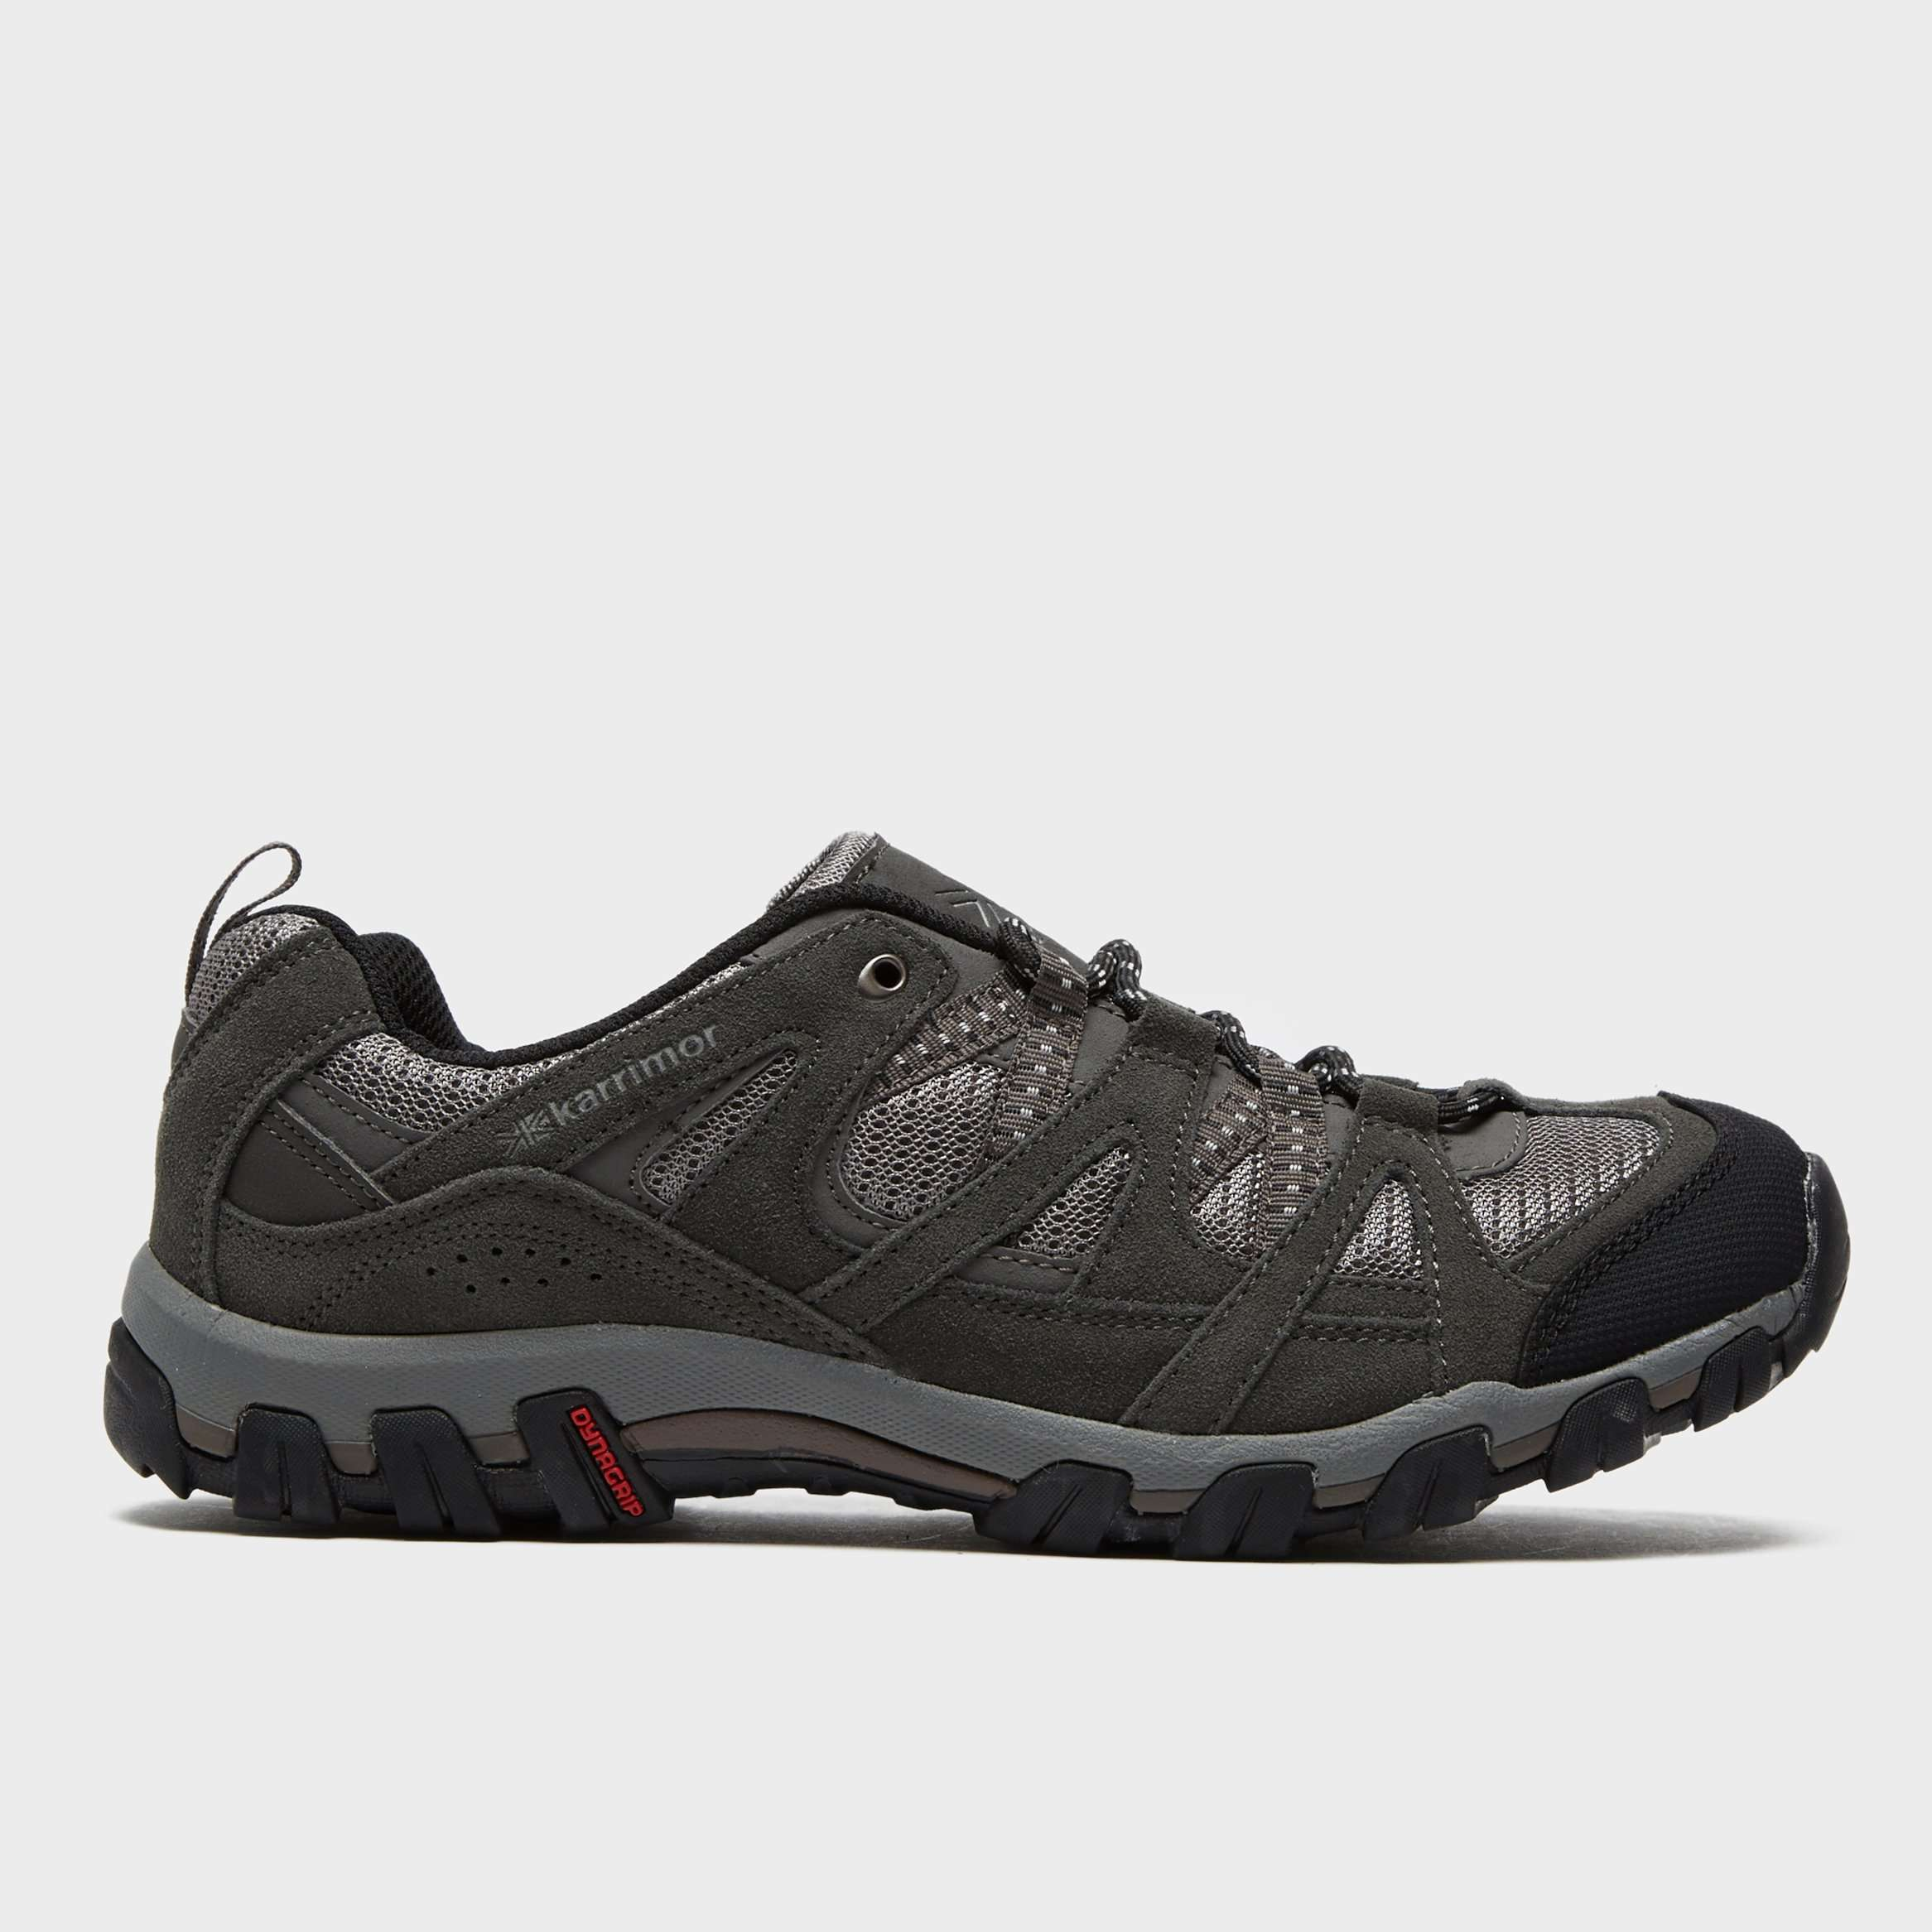 KARRIMOR Men's Supa IV Low Walking Shoe